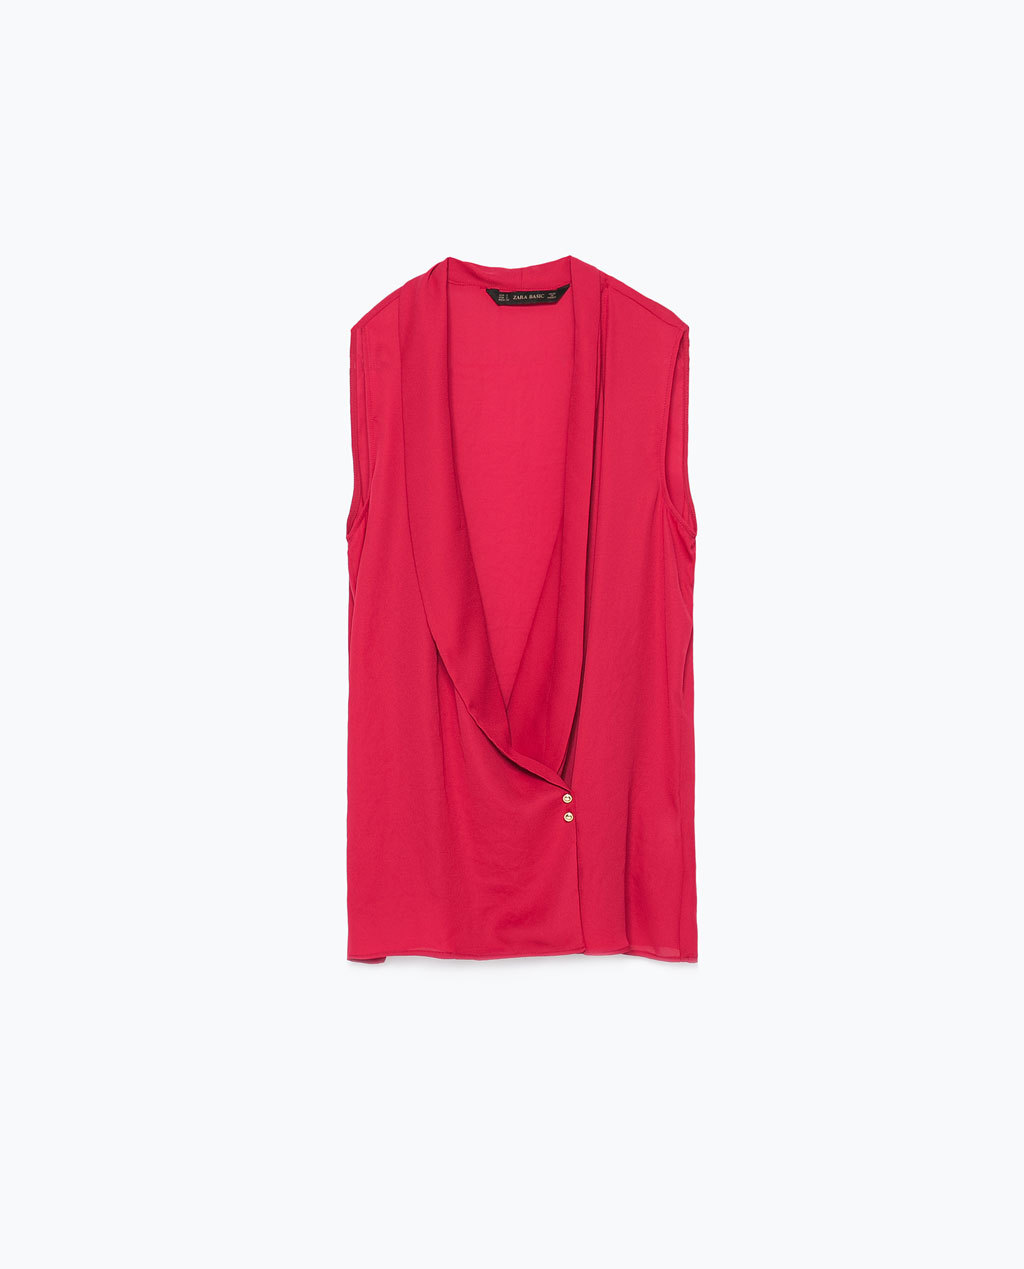 Crossover Top - neckline: low v-neck; pattern: plain; sleeve style: sleeveless; length: below the bottom; predominant colour: hot pink; occasions: casual, evening, creative work; style: top; fibres: polyester/polyamide - 100%; fit: straight cut; sleeve length: sleeveless; texture group: other - light to midweight; secondary colour: raspberry; season: s/s 2015; wardrobe: highlight